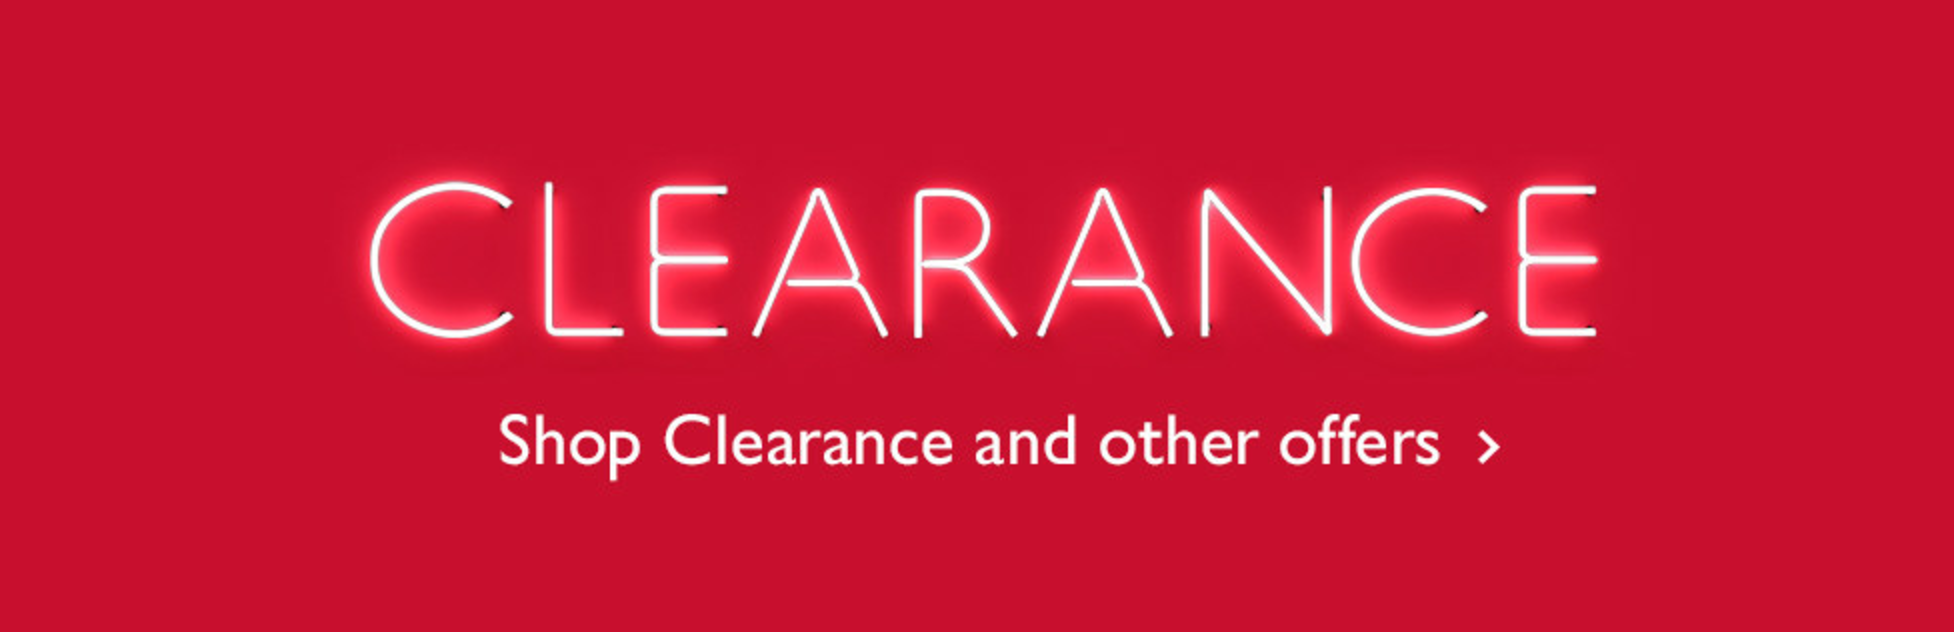 John Lewis: Sale up to 70% off many items